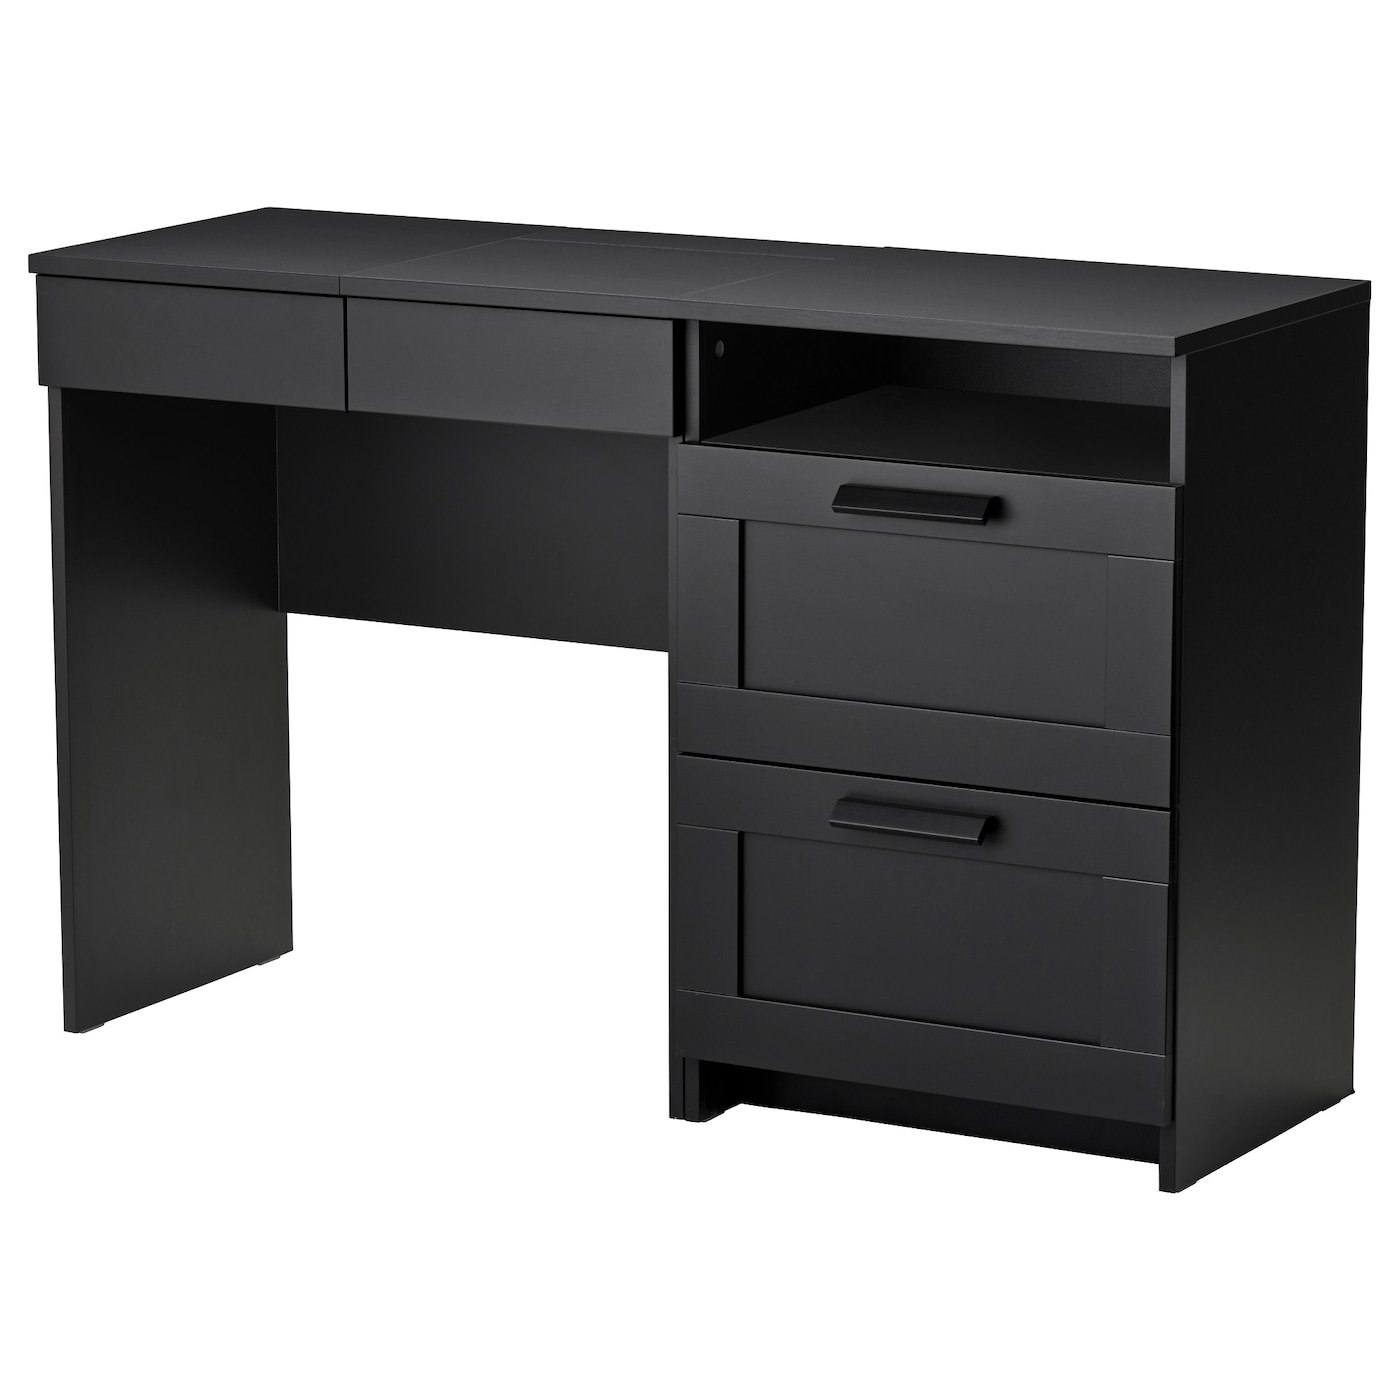 brimnes dressing table chest of 2 drawers black ikea. Black Bedroom Furniture Sets. Home Design Ideas